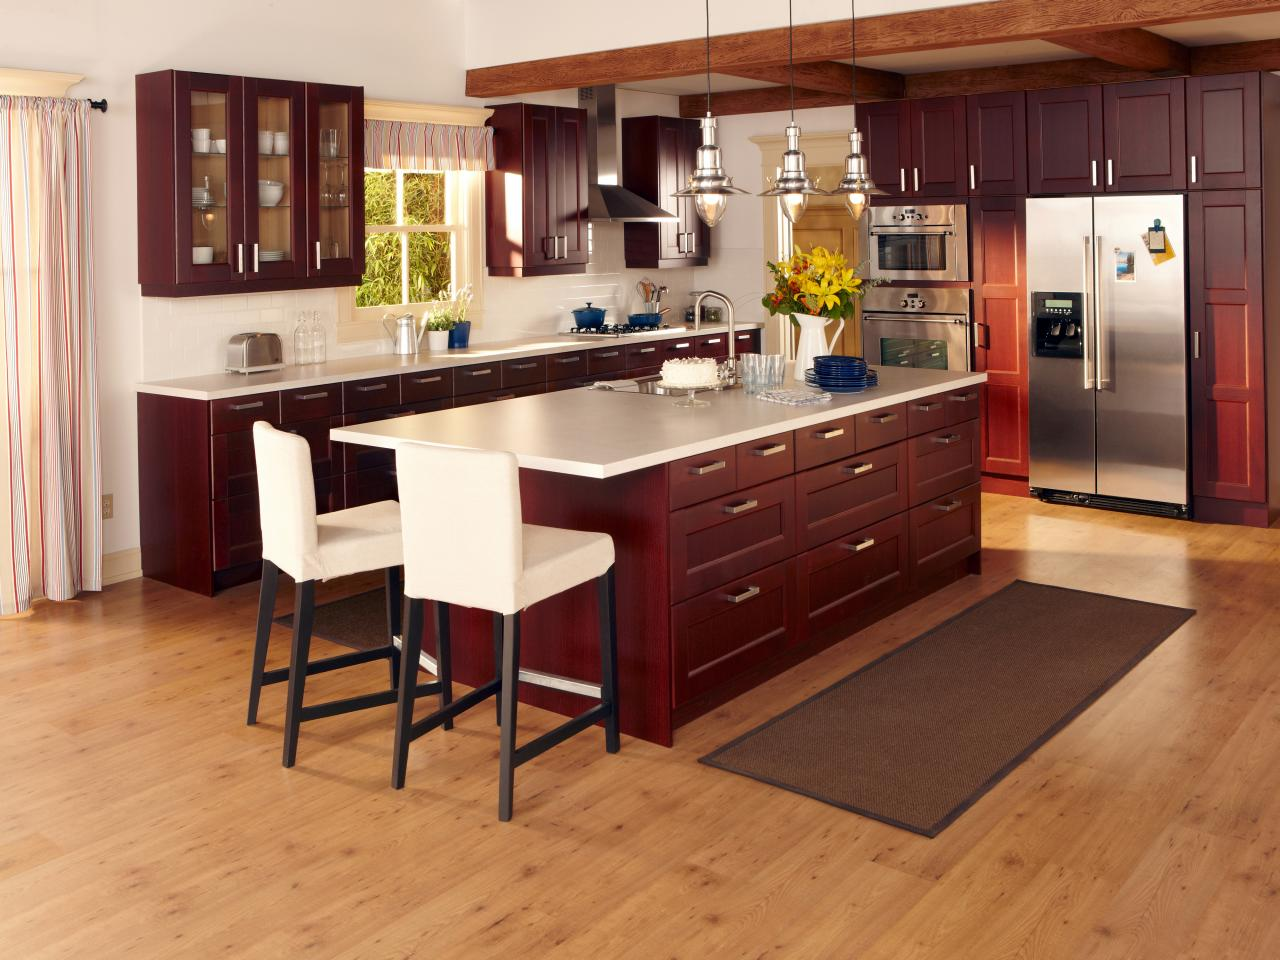 Smart budget kitchen ideas design with cabinets for Kitchen cabinets at ikea